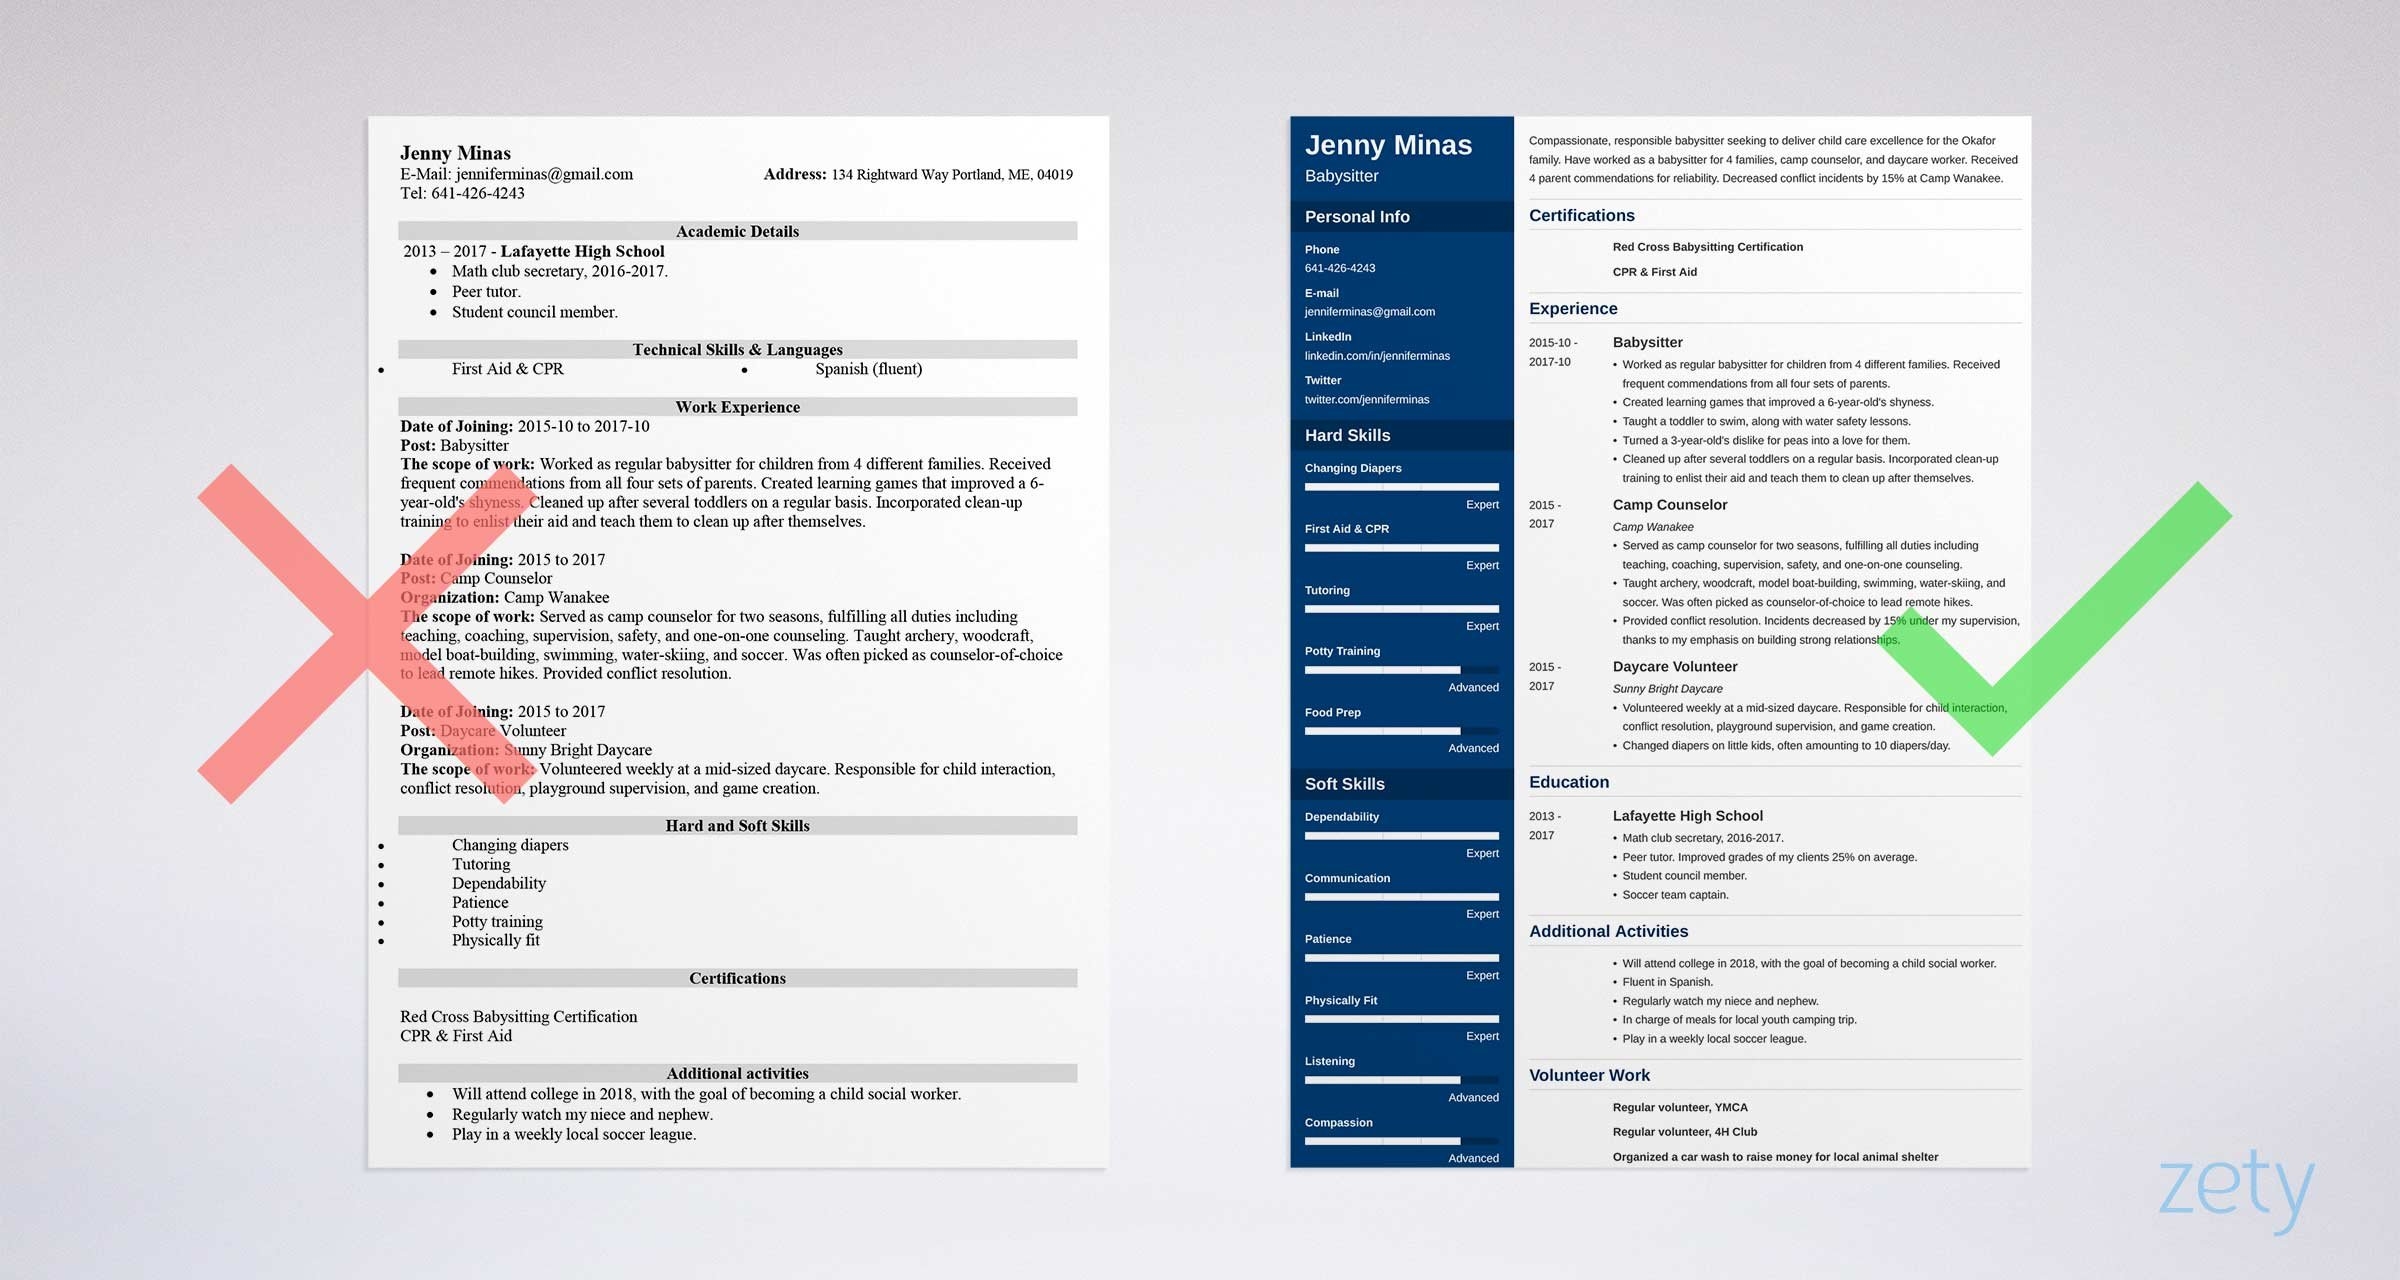 Babysitter Resume: Sample and Complete Guide [+20 Examples]